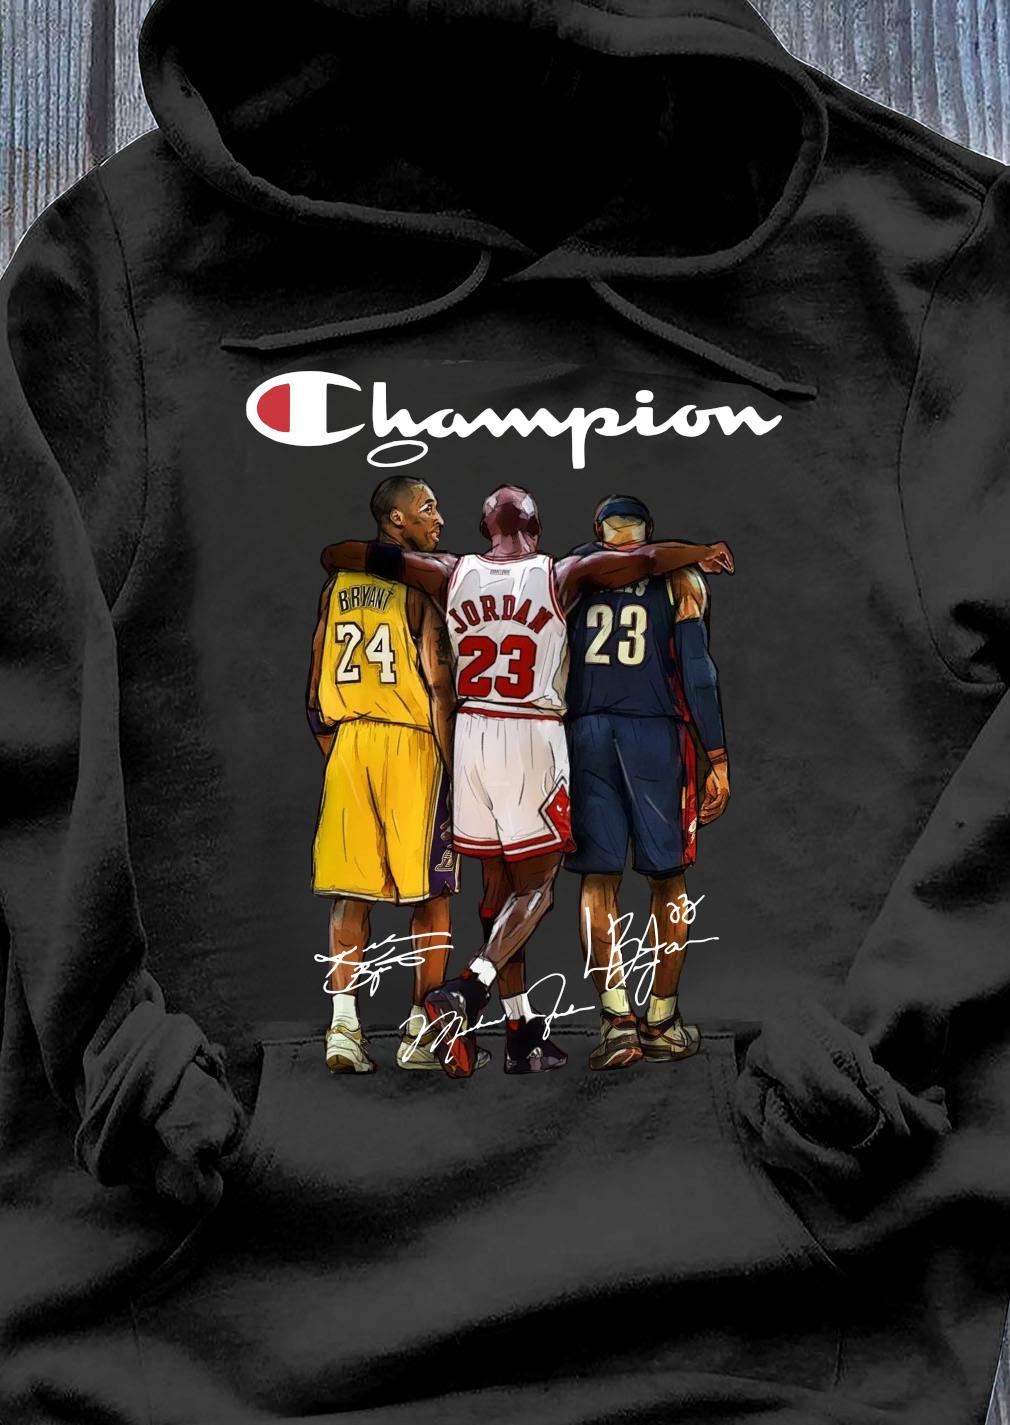 Kobe Bryant 24 Michael Jordan 23 LeBron James 23 Champion Signature Shirt Hoodie